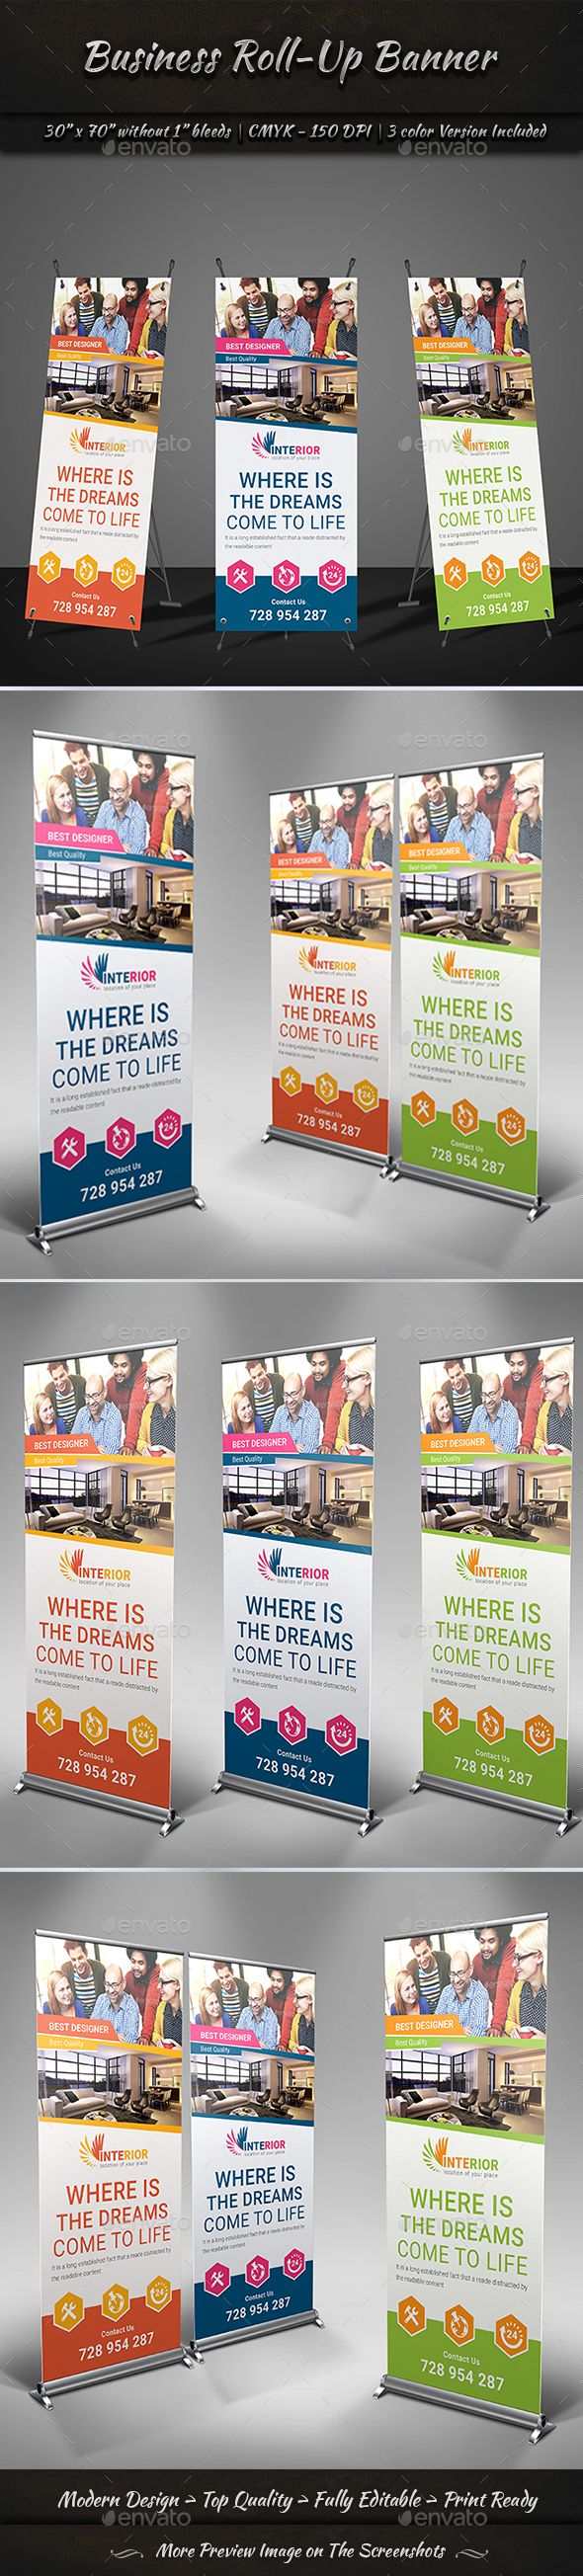 Roll-Up Banner Volume 2 by GraphicShaper Business Roll-Up Banner Templates is a ...